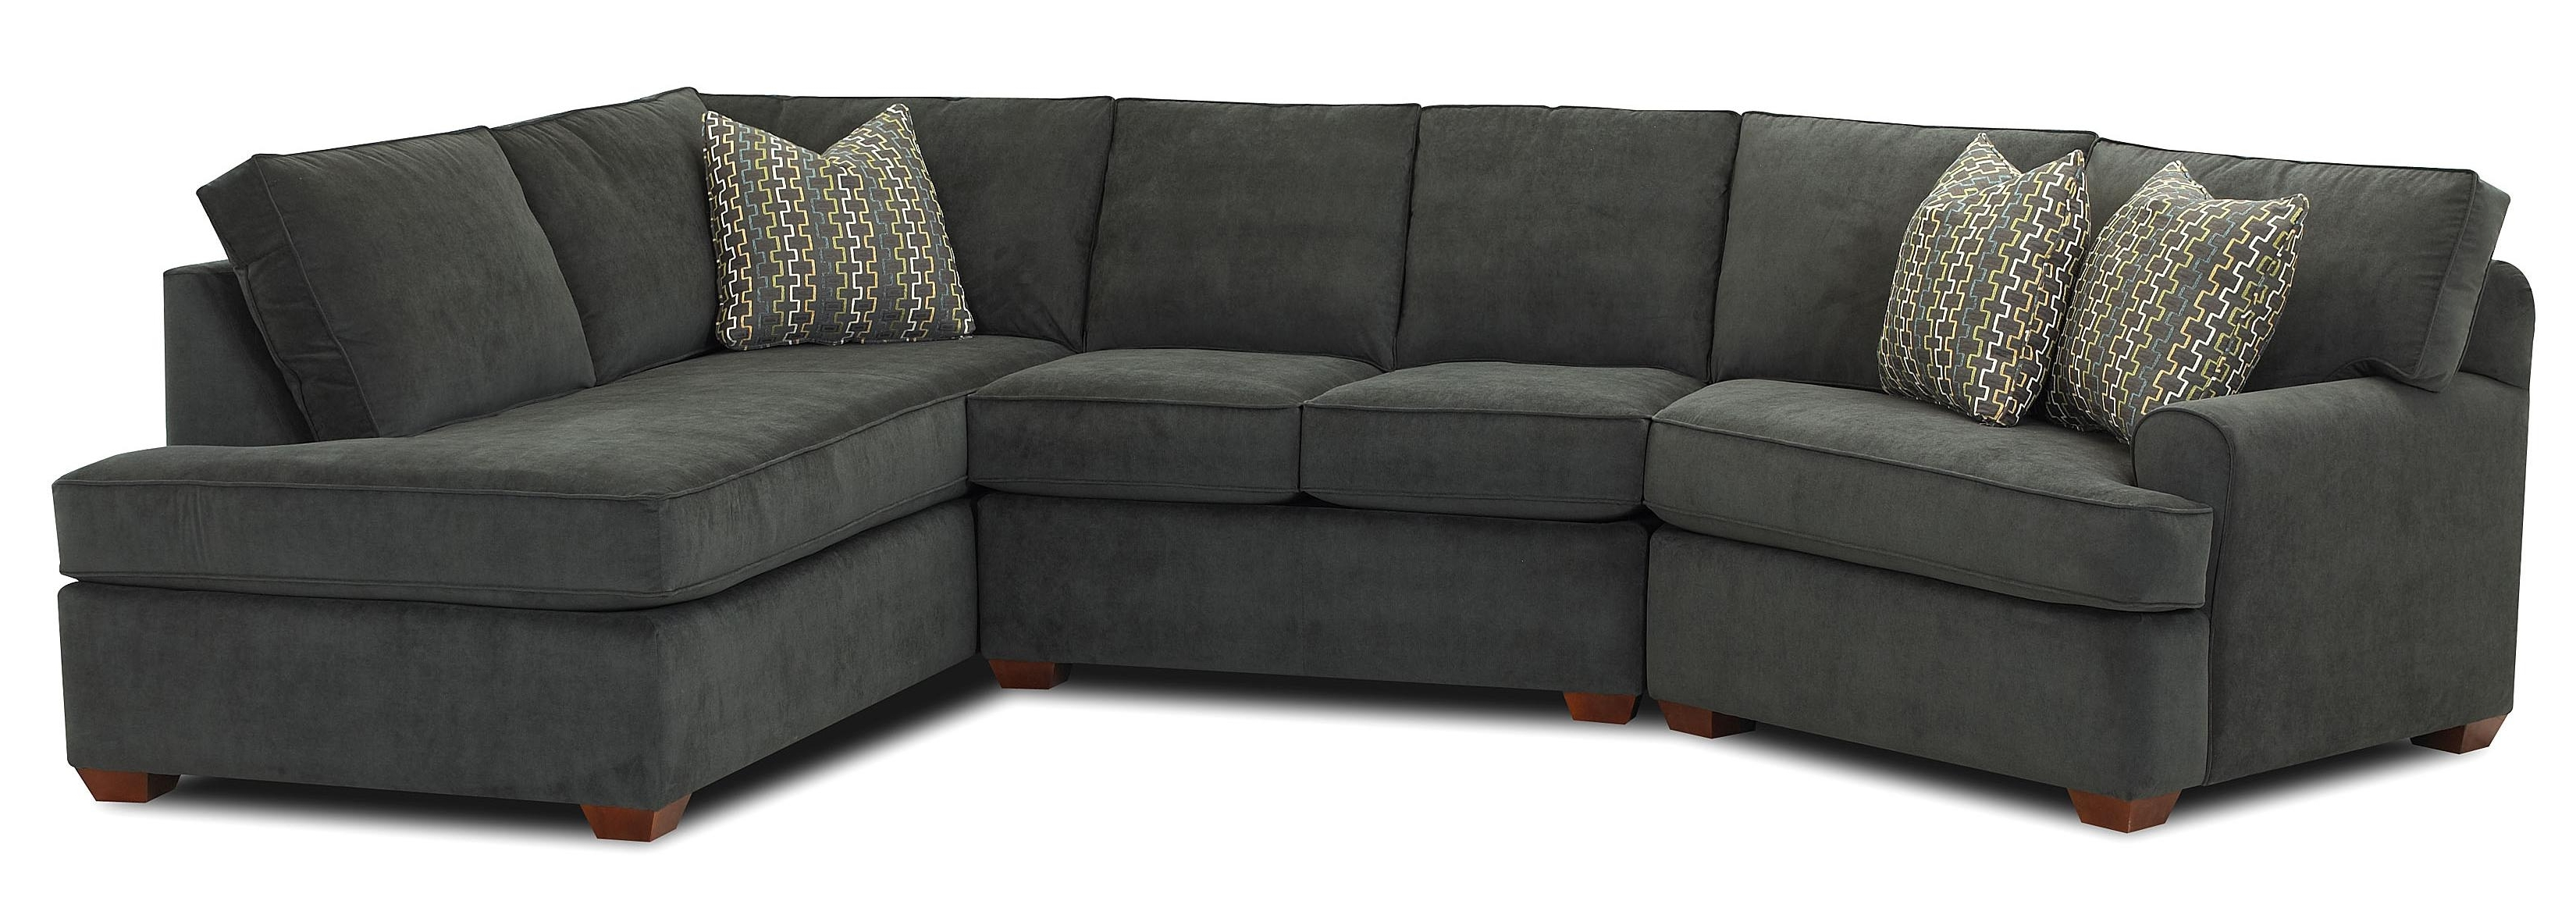 Small Sofas With Chaise Inside Newest Sofa ~ Awesome Small Sectional Sofa With Chaise Hayward Small Ash (View 9 of 15)